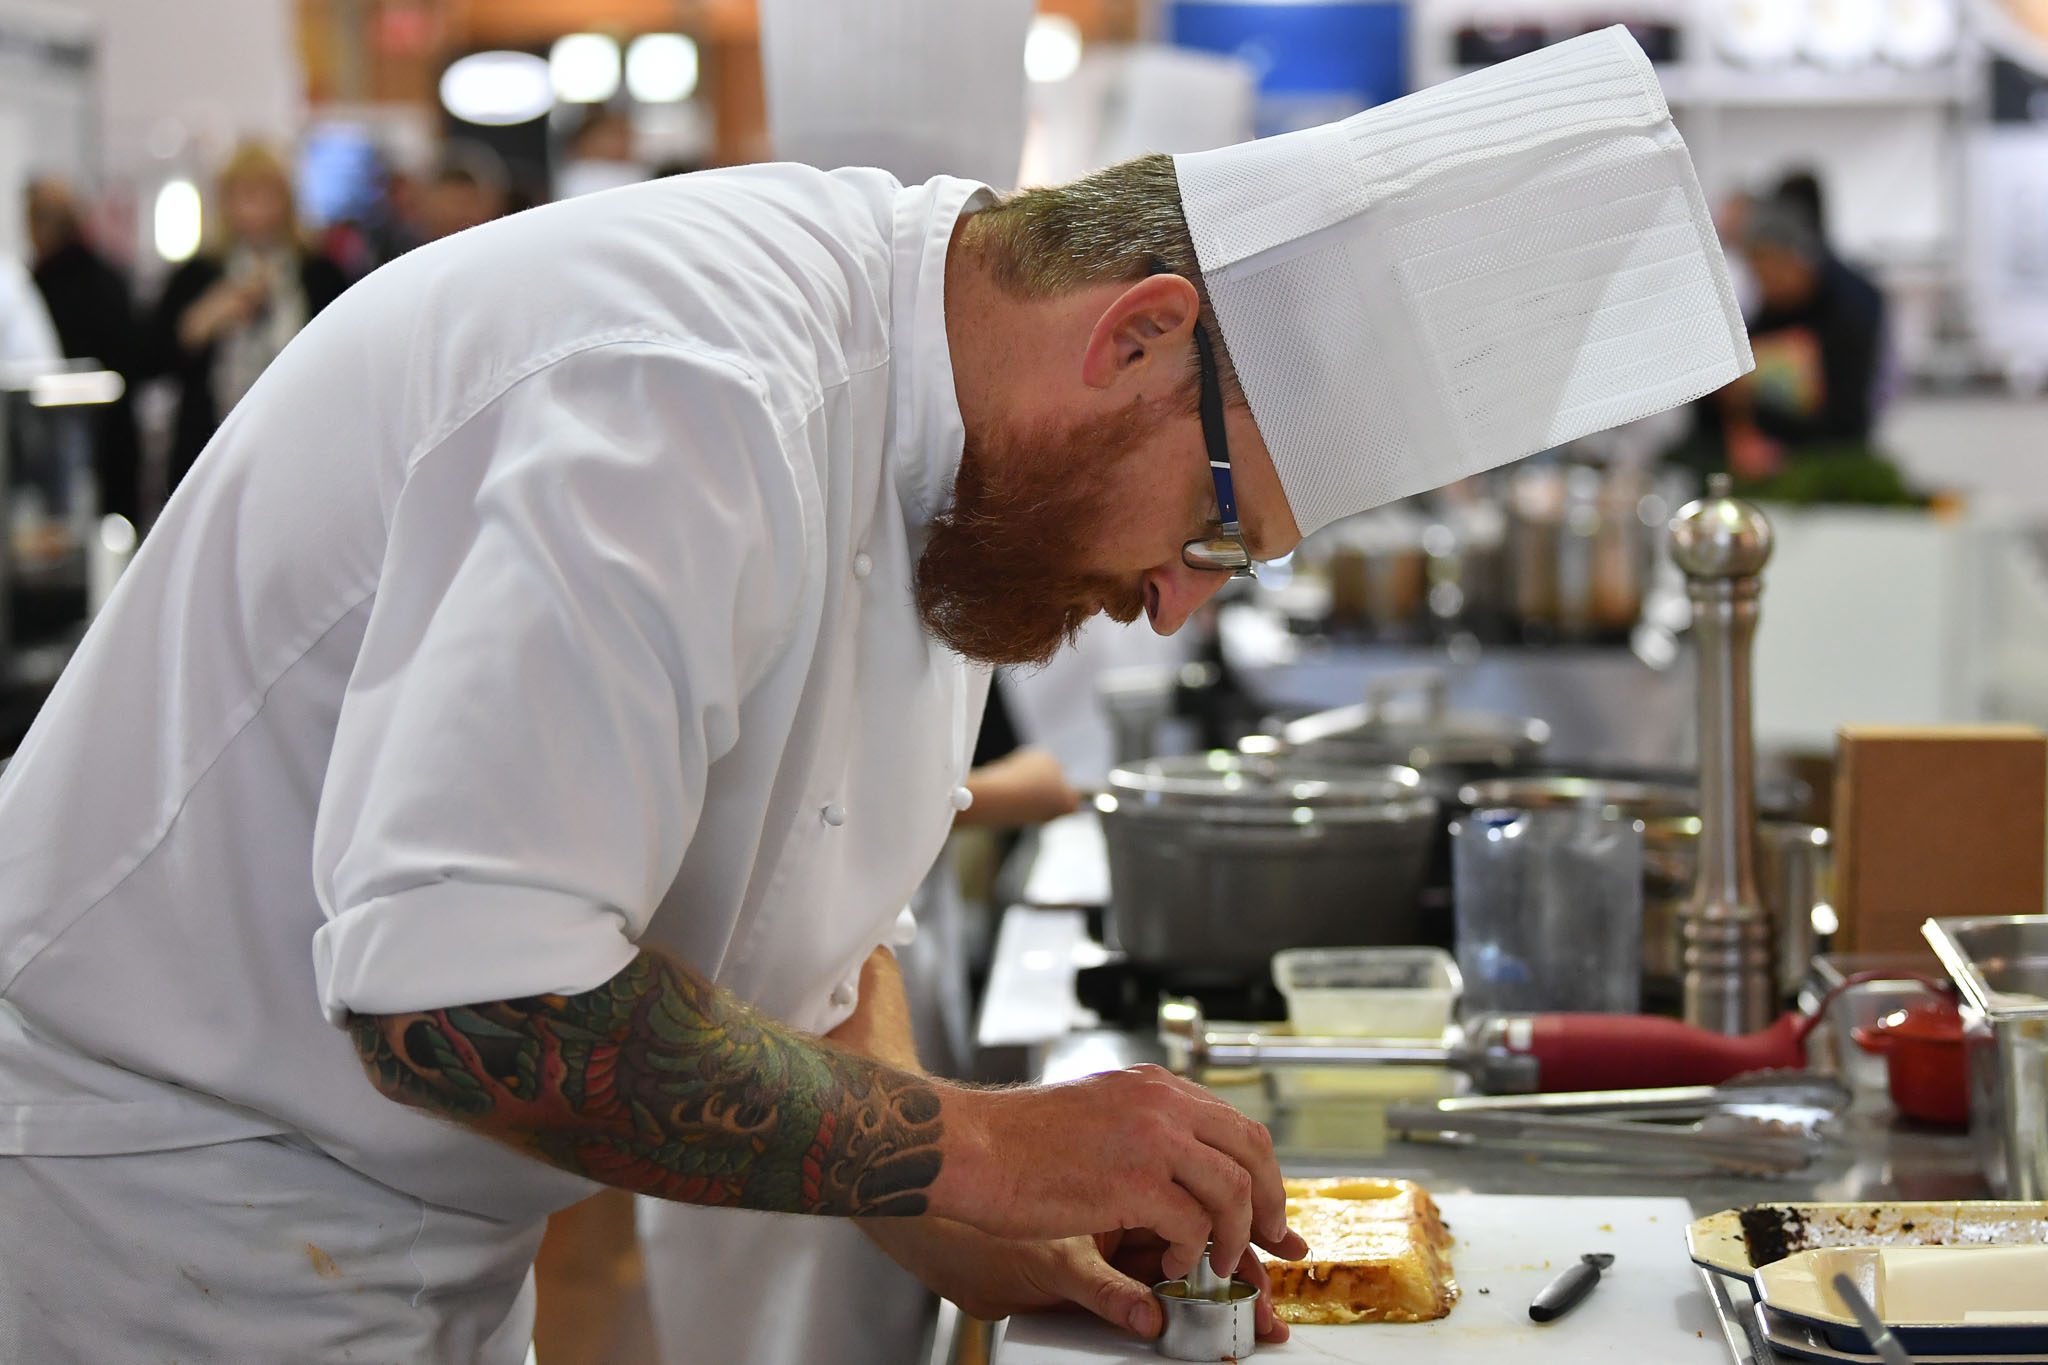 Melbourne, 30 May 2017 - Andrew Ballard of the Simmer Culinary in Mornington prepares a garnish at the Australian selection trials of the Bocuse d'Or culinary competition held during the Food Service Australia show at the Royal Exhibition Building in Melbourne, Australia. Photo Sydney Low